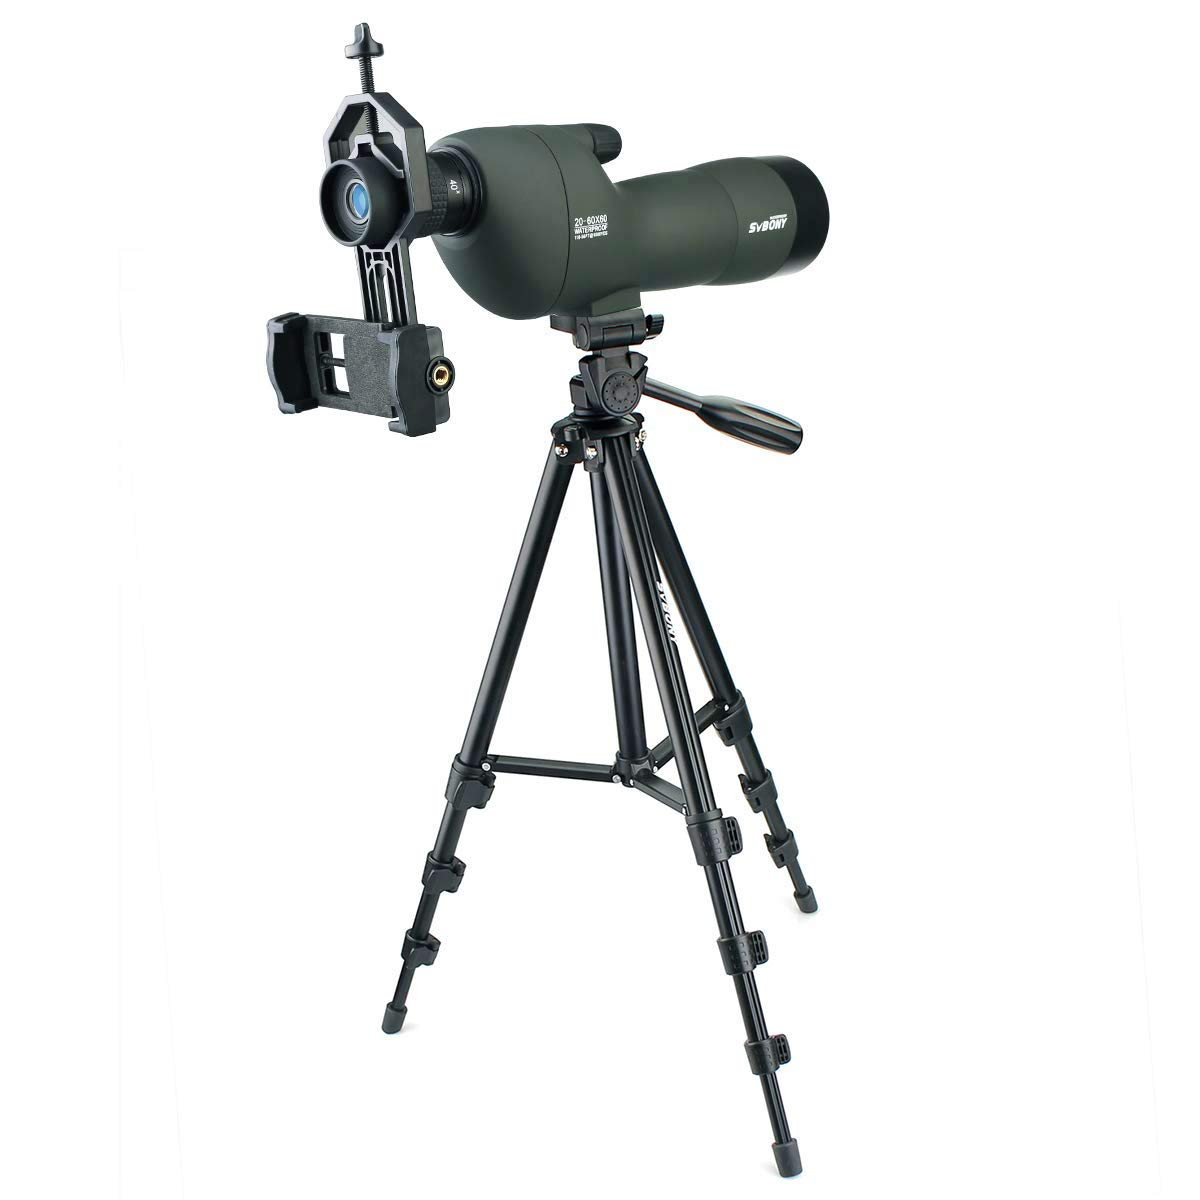 SVBONY SV28 20-60x60 Spotting Scopes Straight Scope Telescope for Bird Watching Target Shooting Hunting Waterproof Spotting Scopes 4-section Tripod Tabletop Tripod Cell Phone Adapter by SVBONY